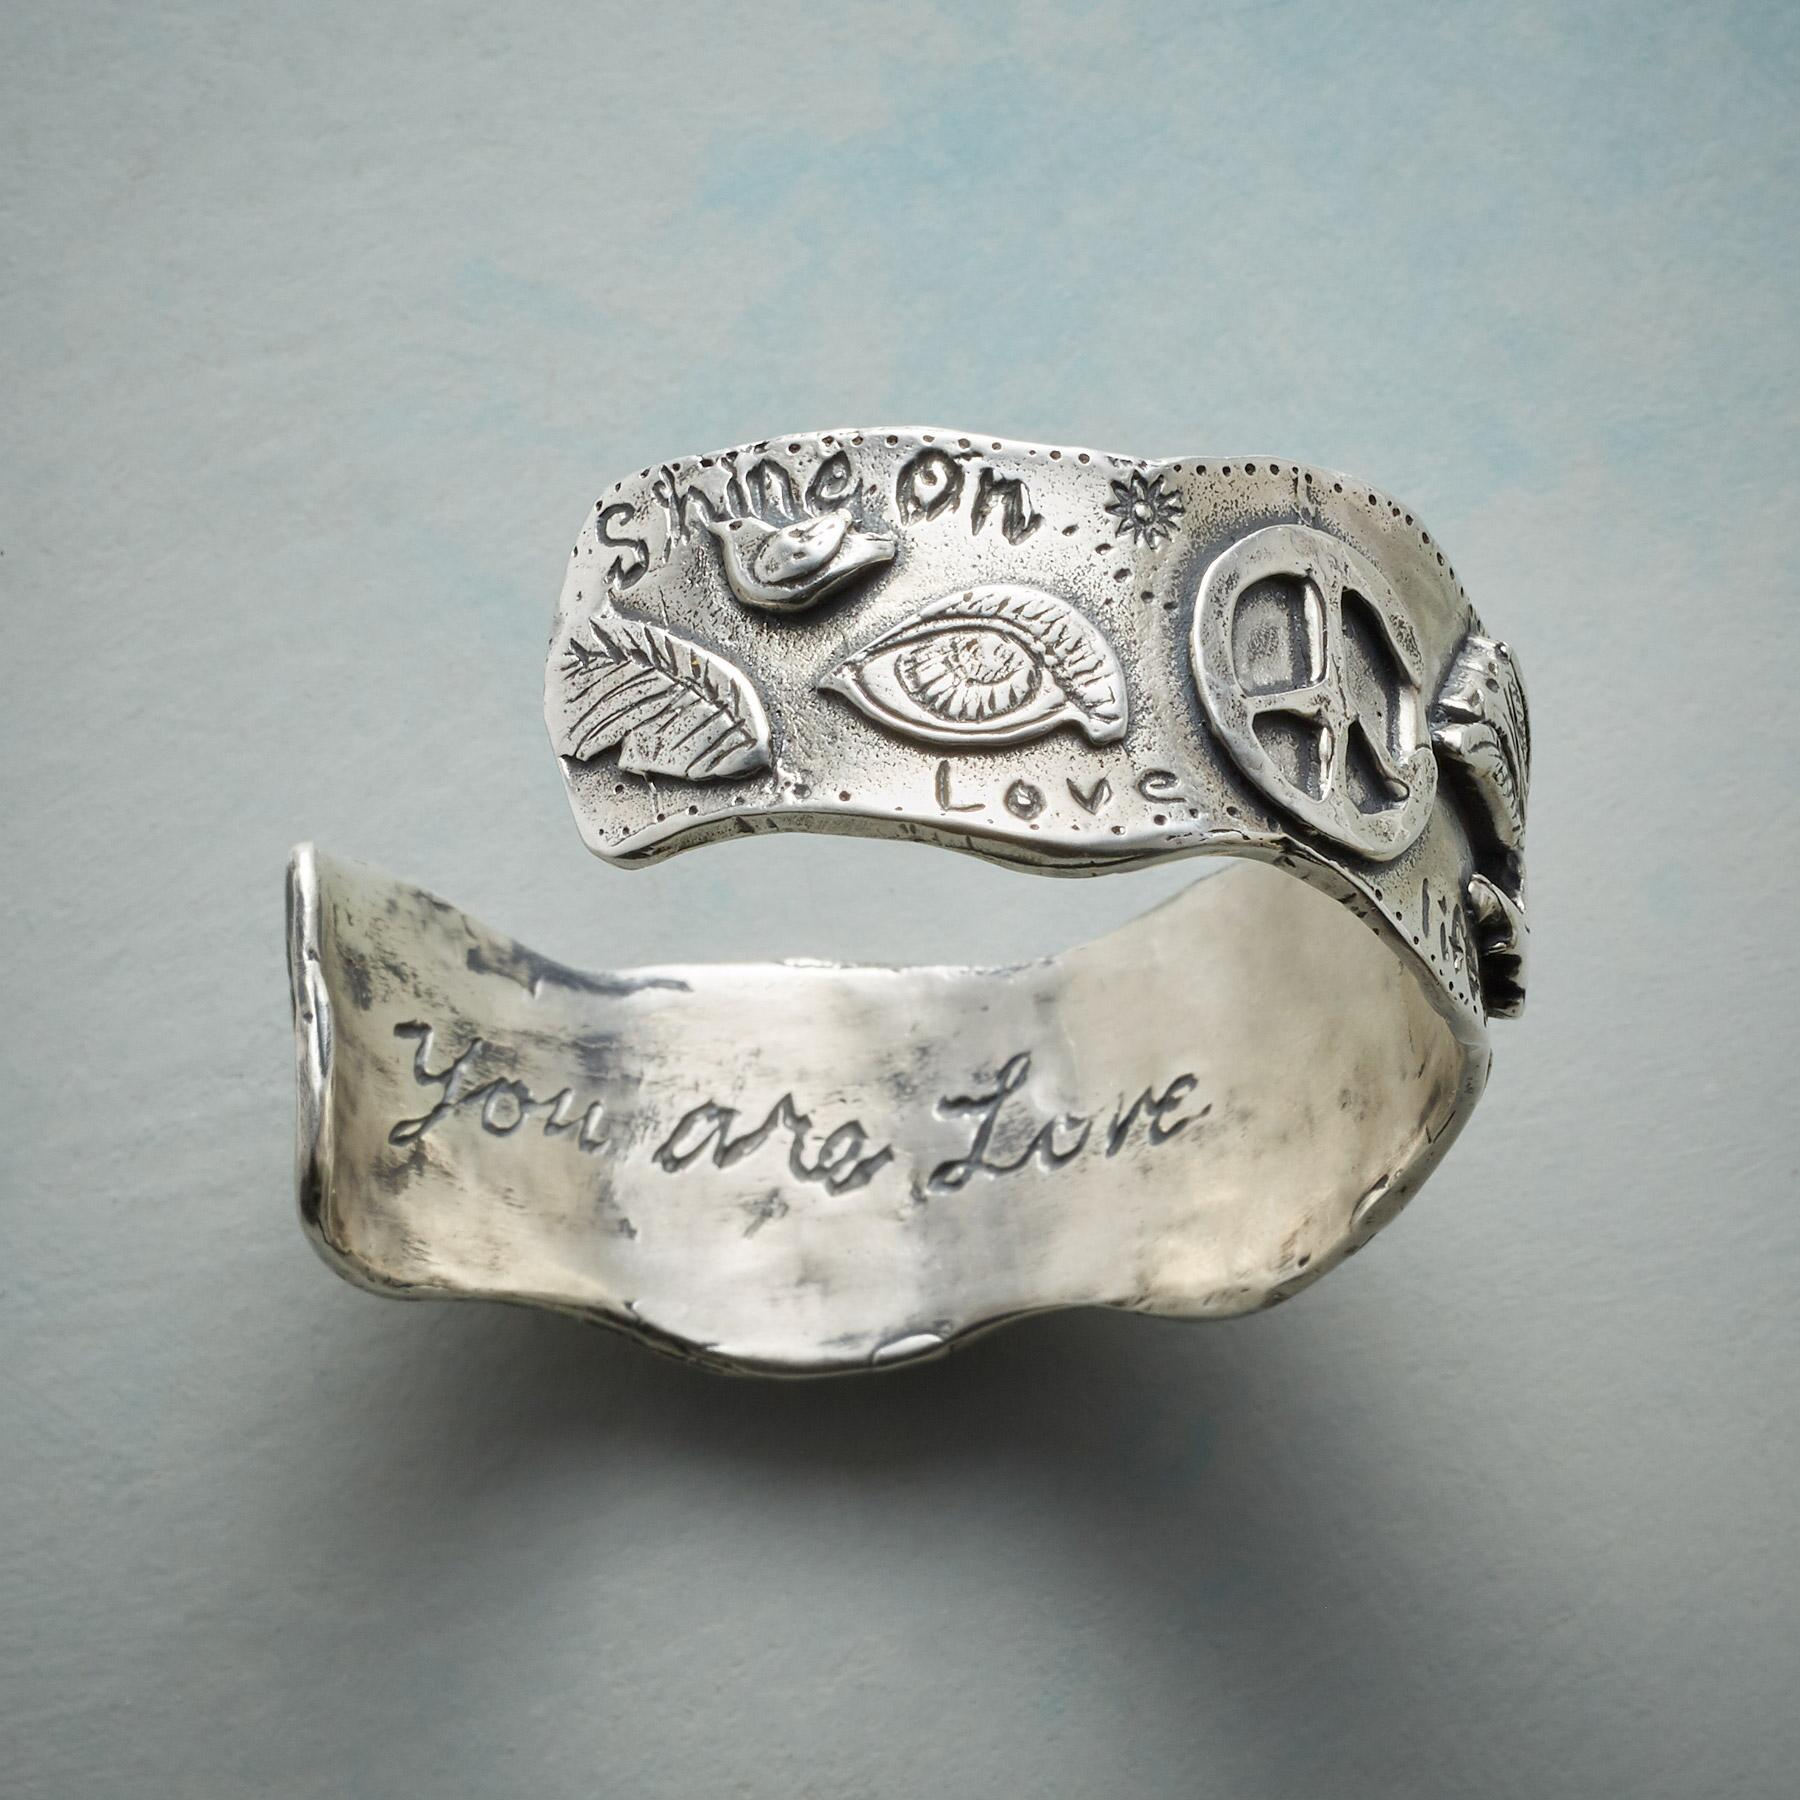 ALL THINGS CUFF BRACELET: View 3